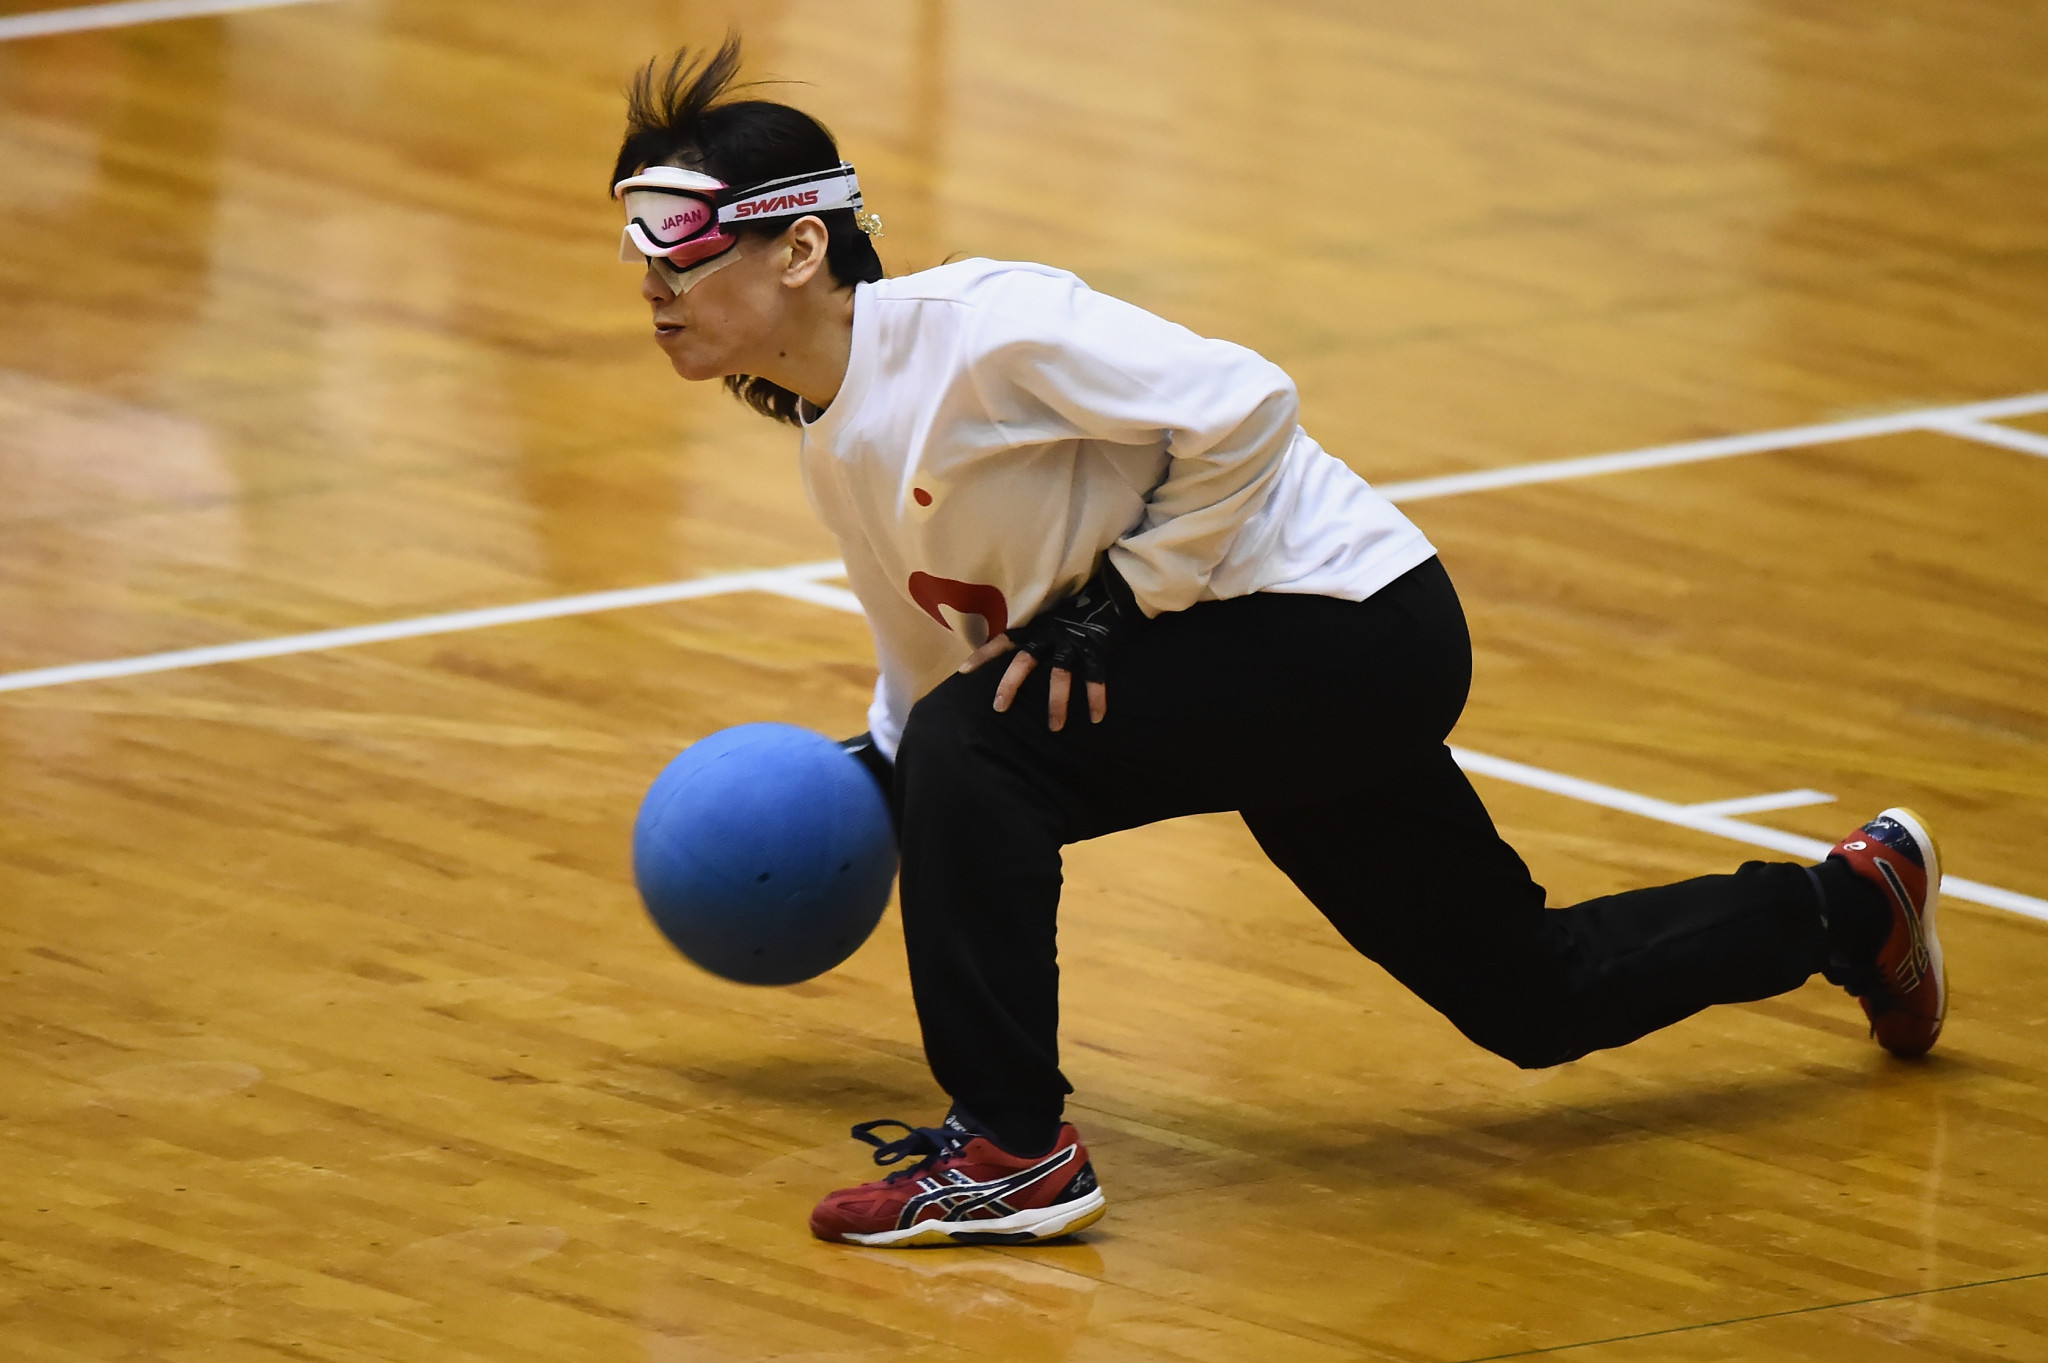 Four teams set to contest Tokyo 2020 goalball test event